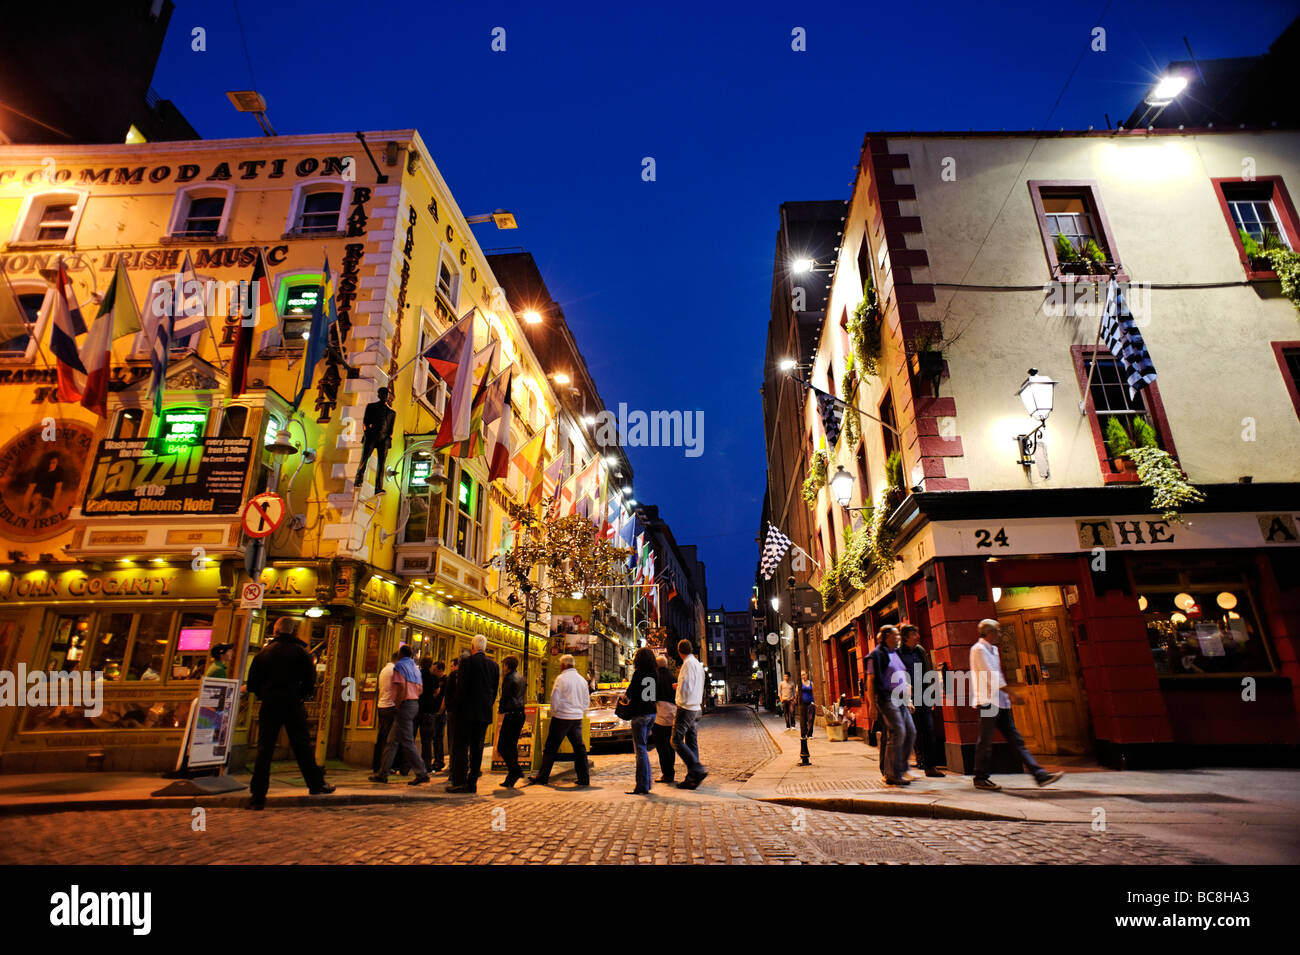 Row of pubs along the busy Temple Bar nightlife area Dublin Republic of Ireland - Stock Image